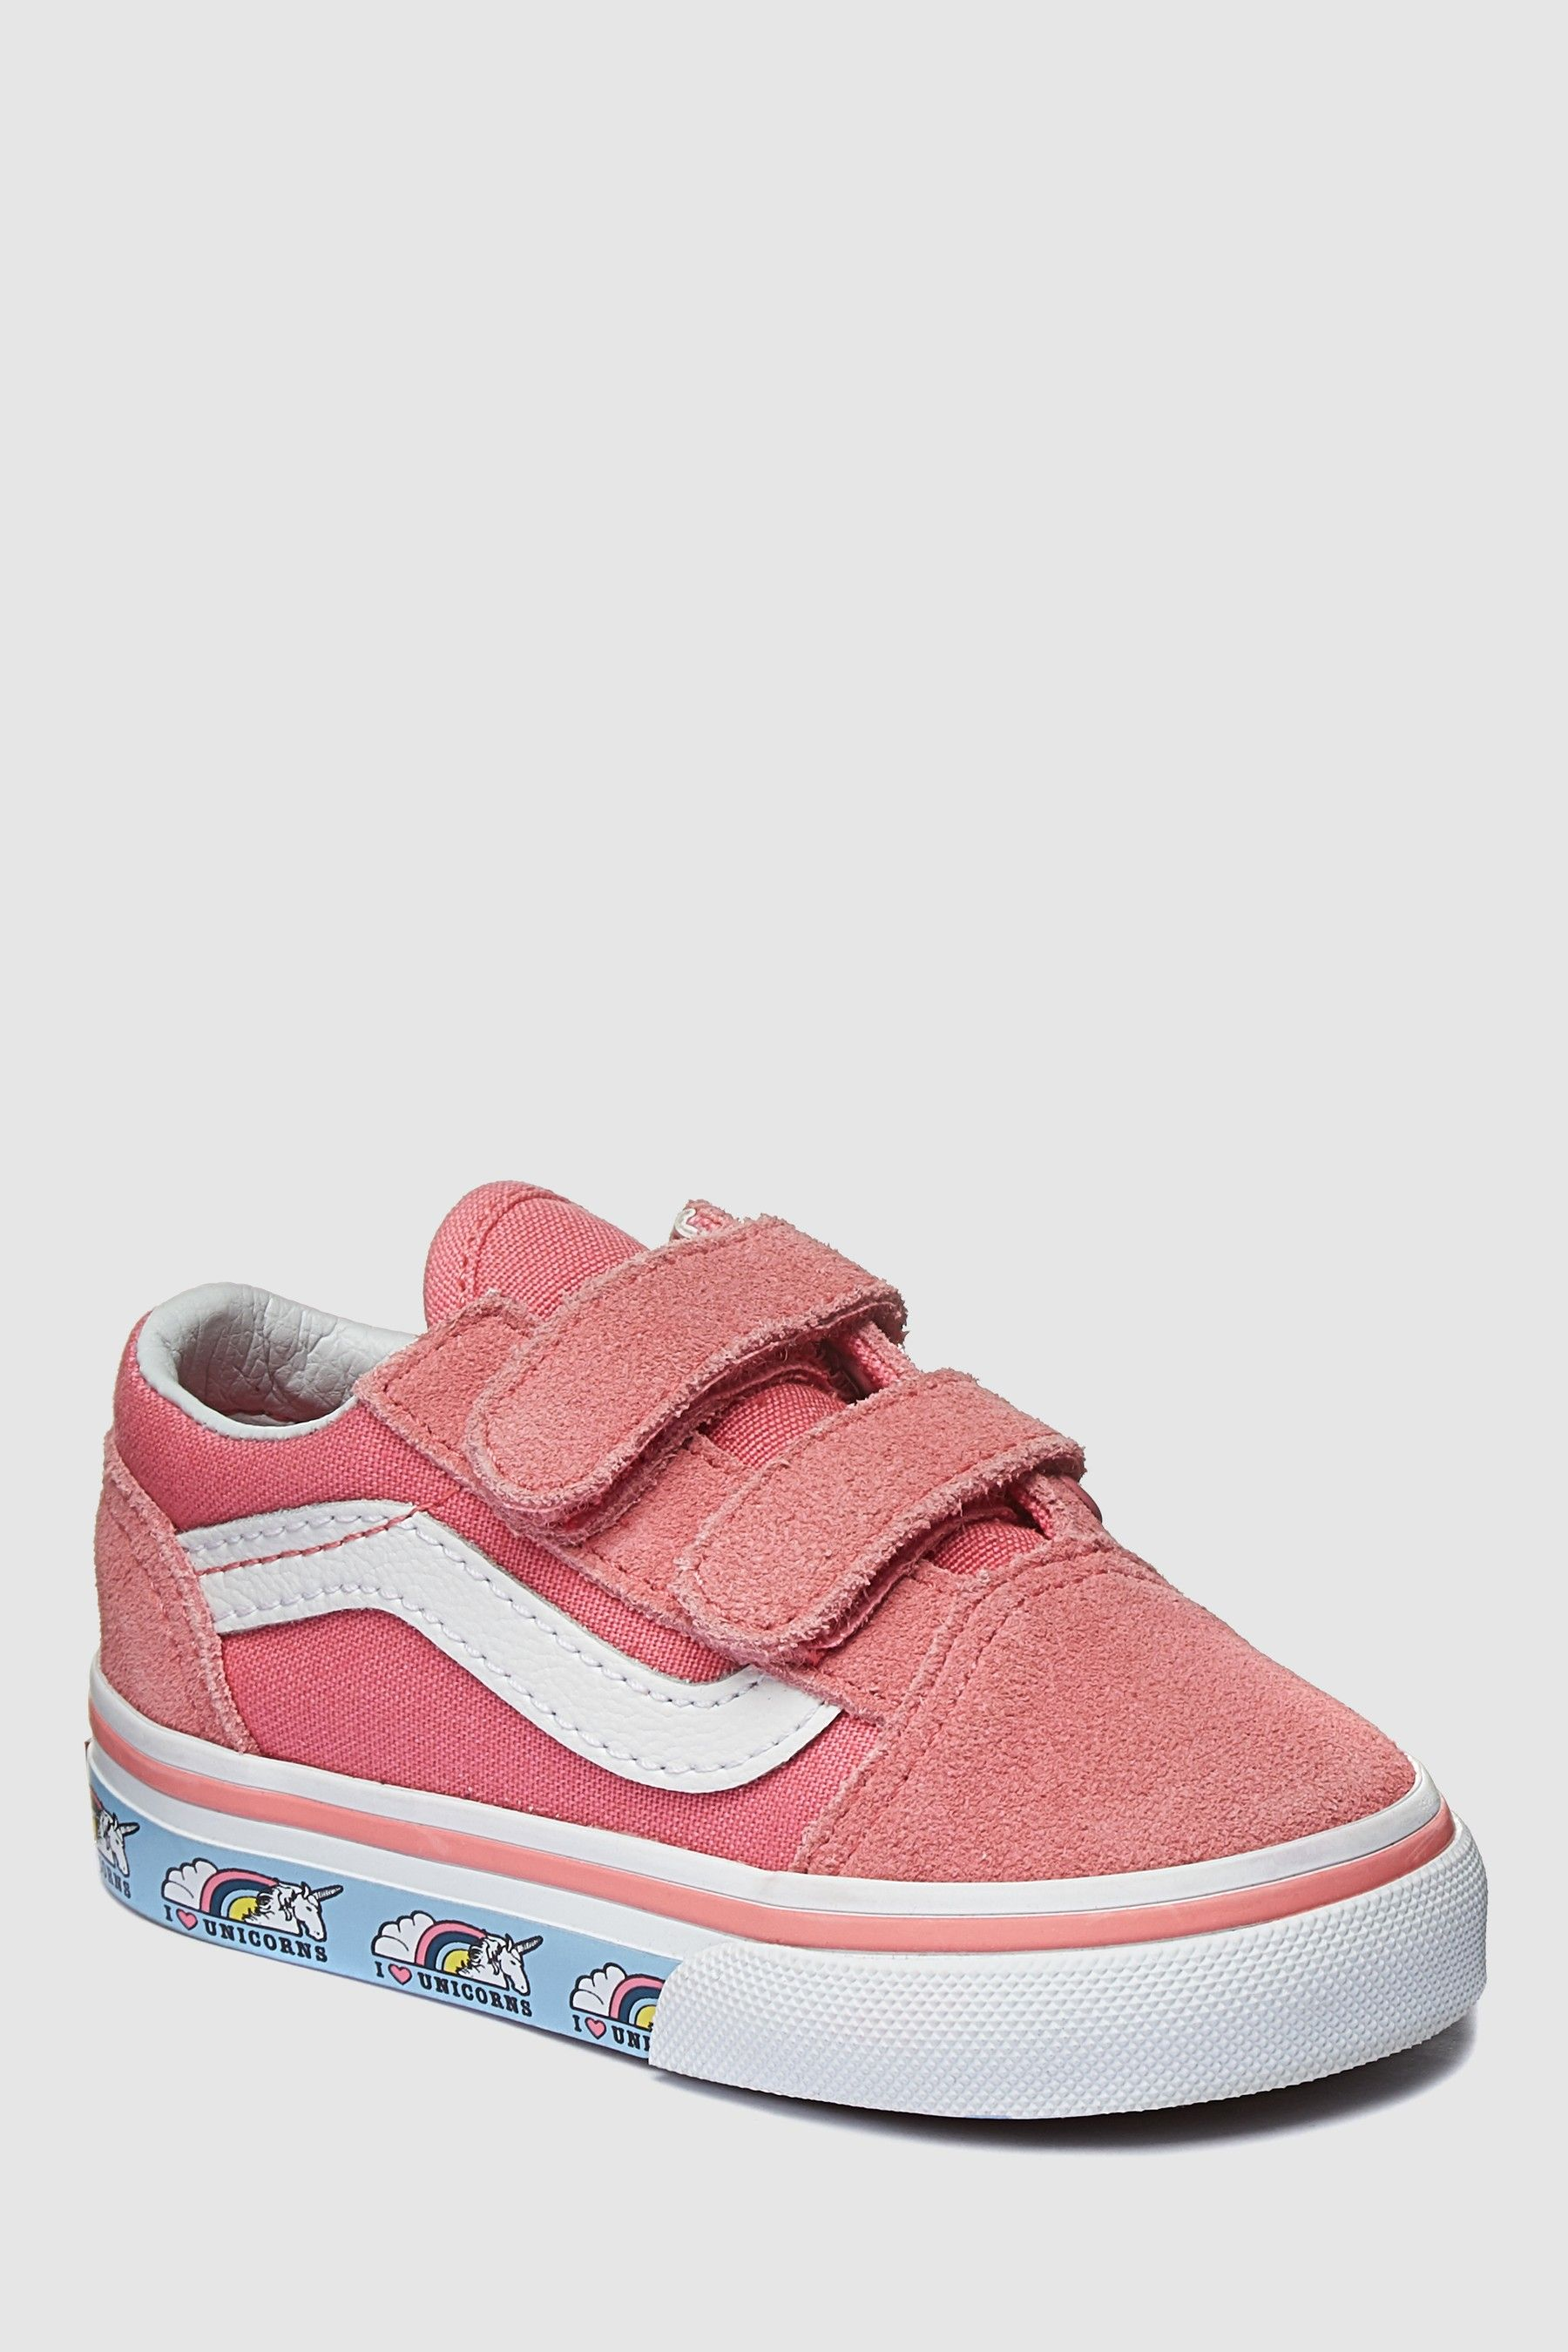 girls vans uk